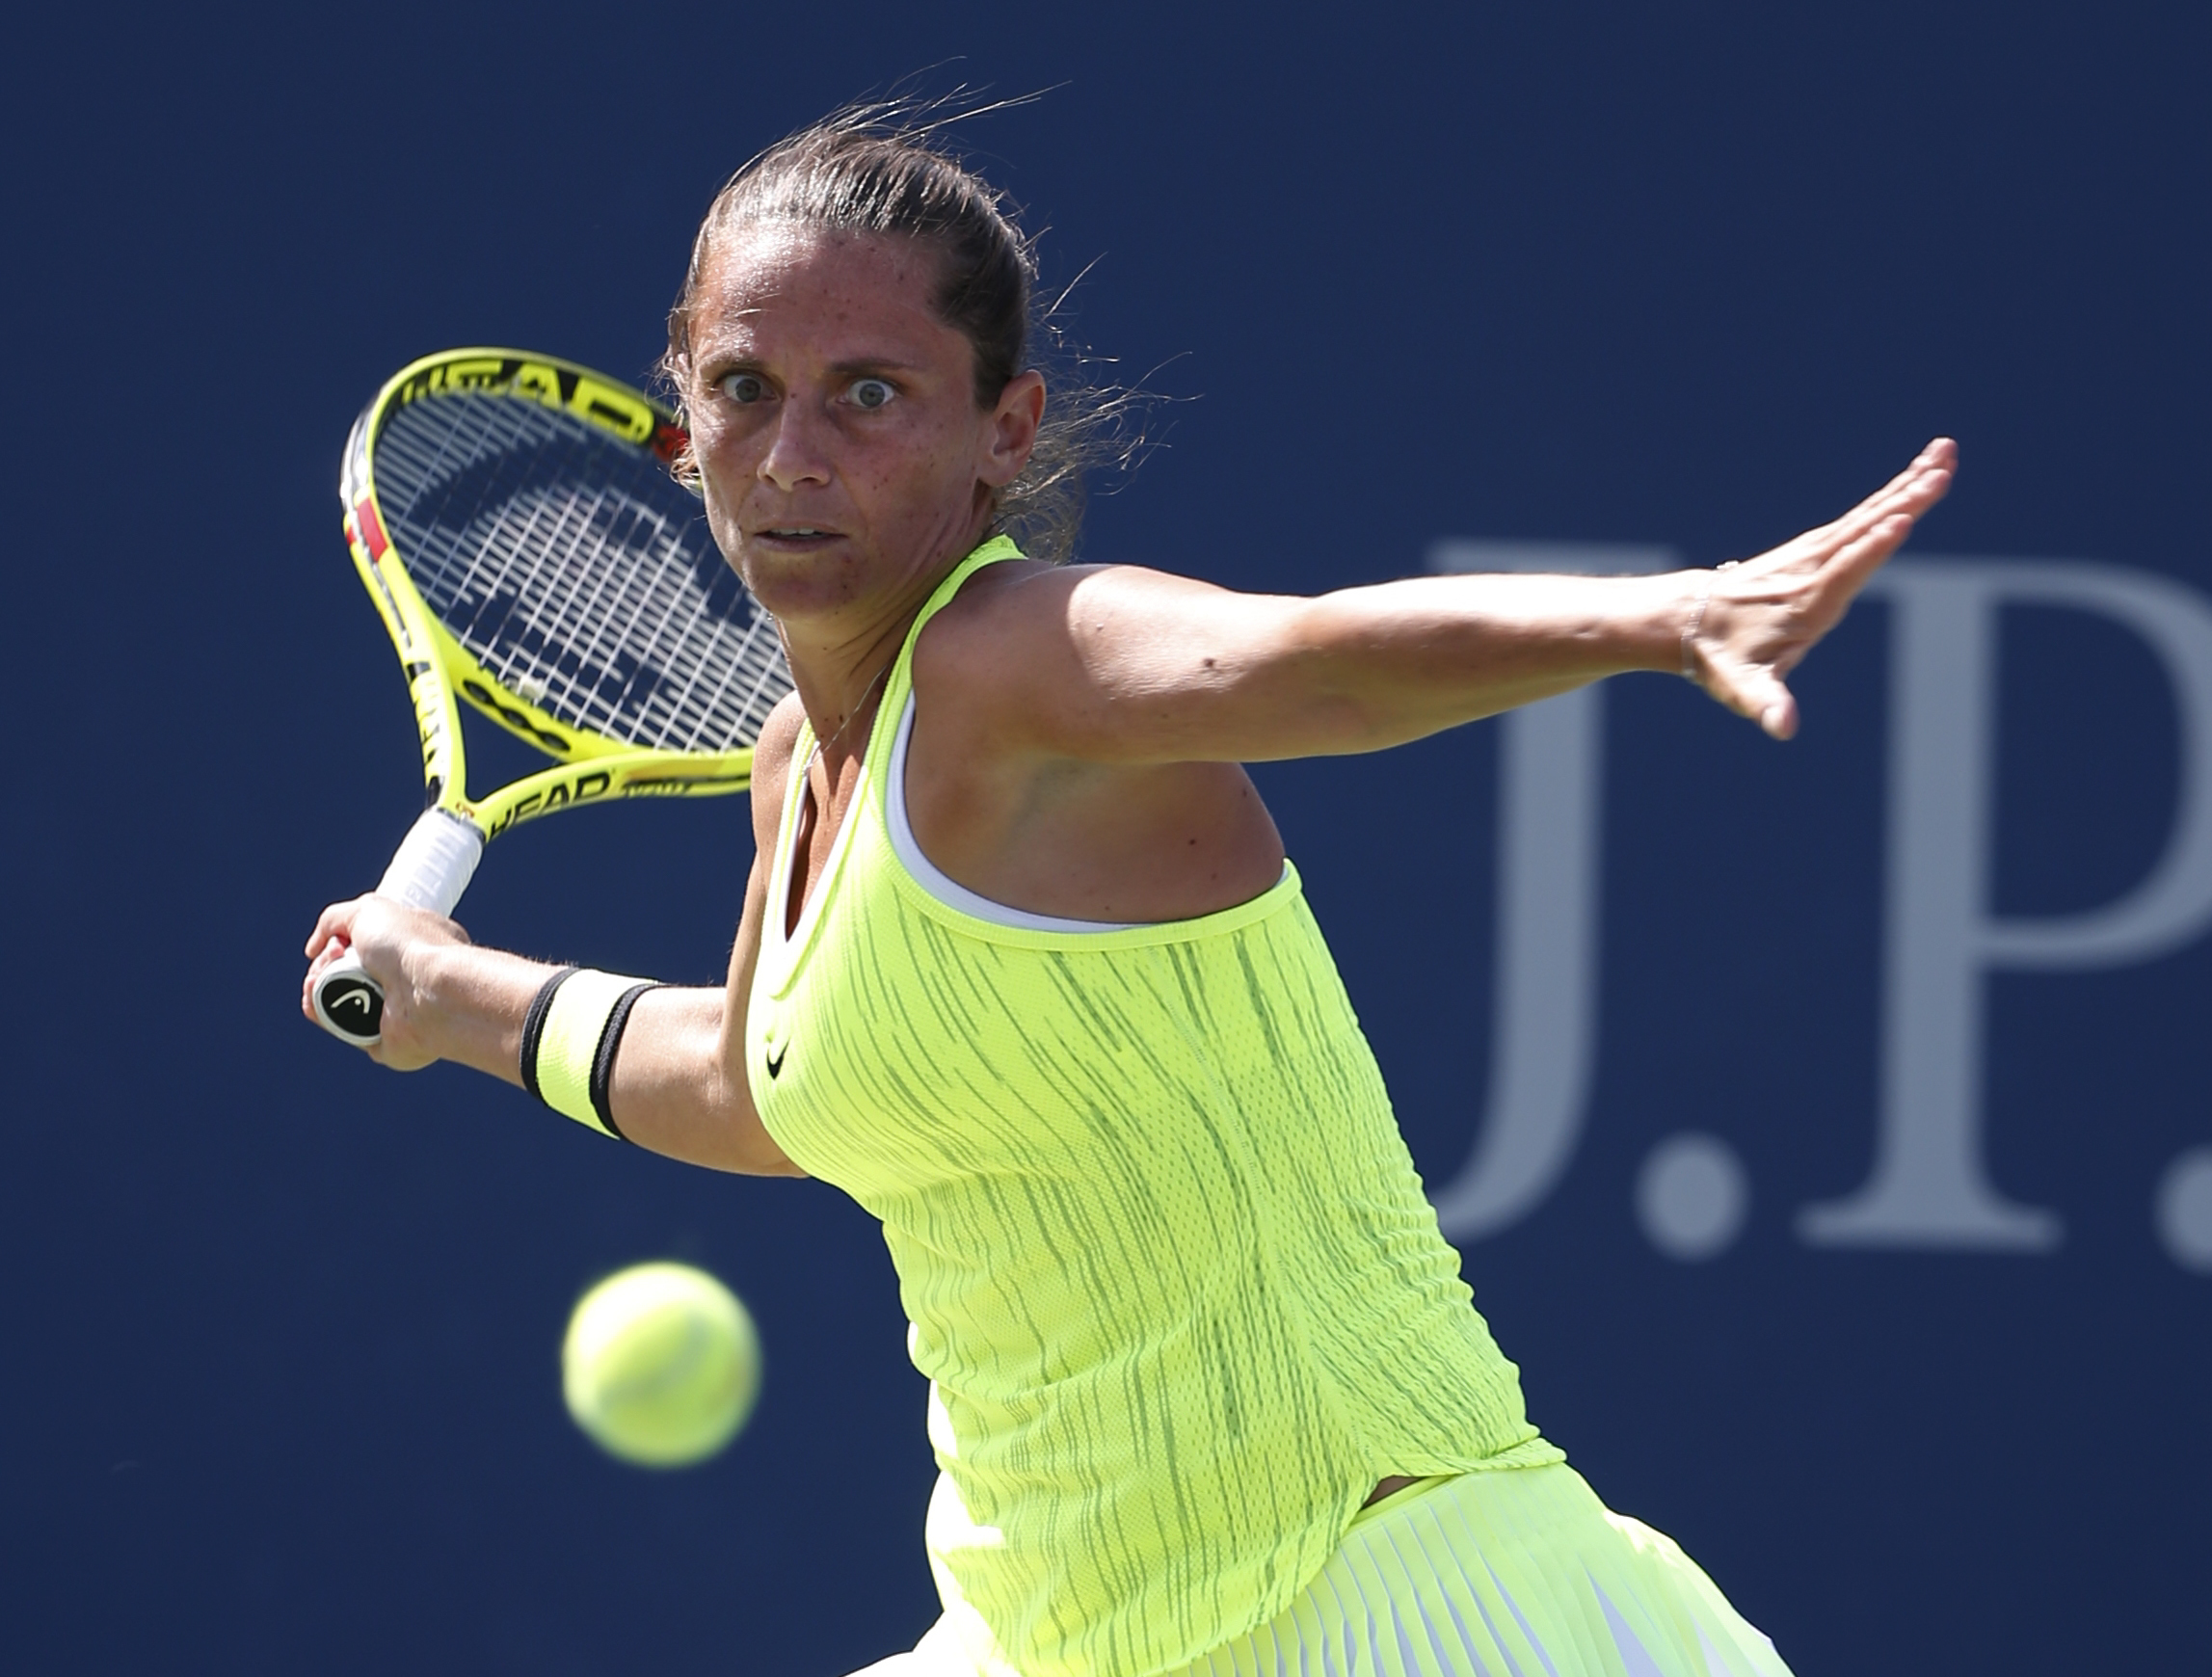 Roberta Vinci, of Italy, returns a shot to Lesia Tsurenko, of Ukraine, during the fourth round of the U.S. Open tennis tournament, Sunday, Sept. 4, 2016, in New York. (AP Photo/Kathy Willens)